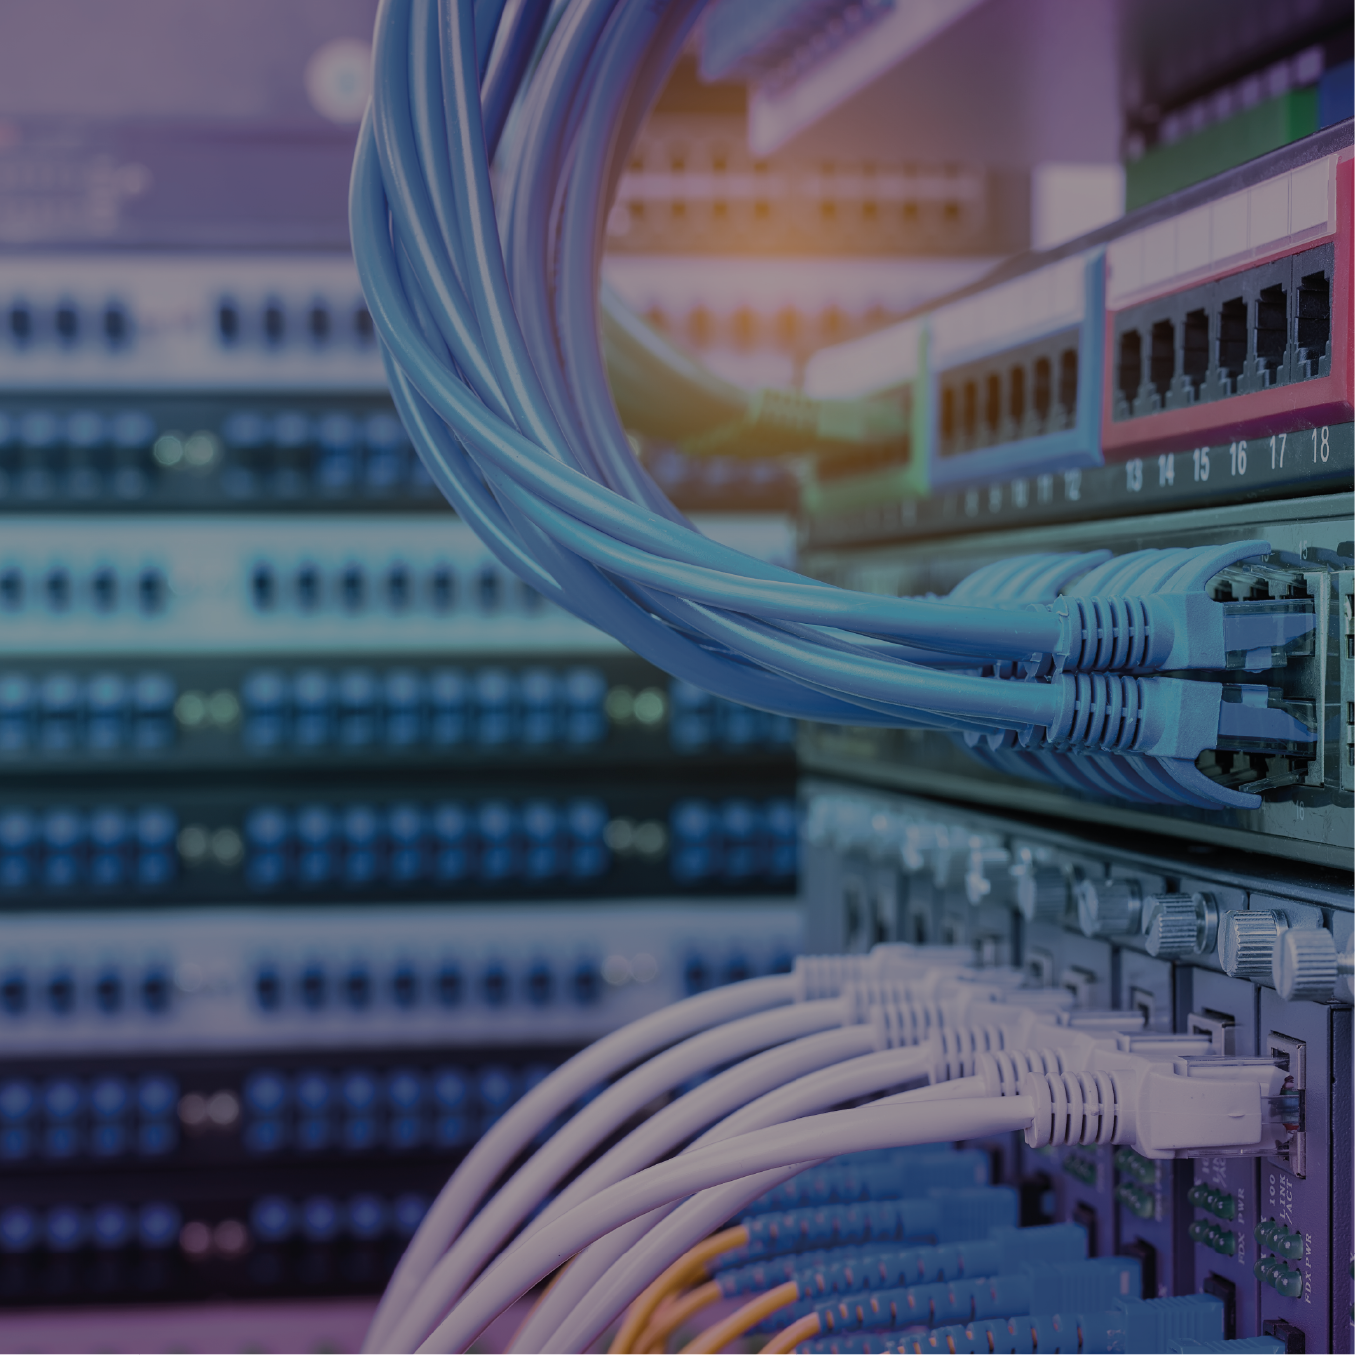 Fibre and cabling - With more than 20 years' experience designing, building and managing data centres, we are ideally positioned to provide data centre and server room structured cabling solutions and services for our customersFIND OUT MORE...